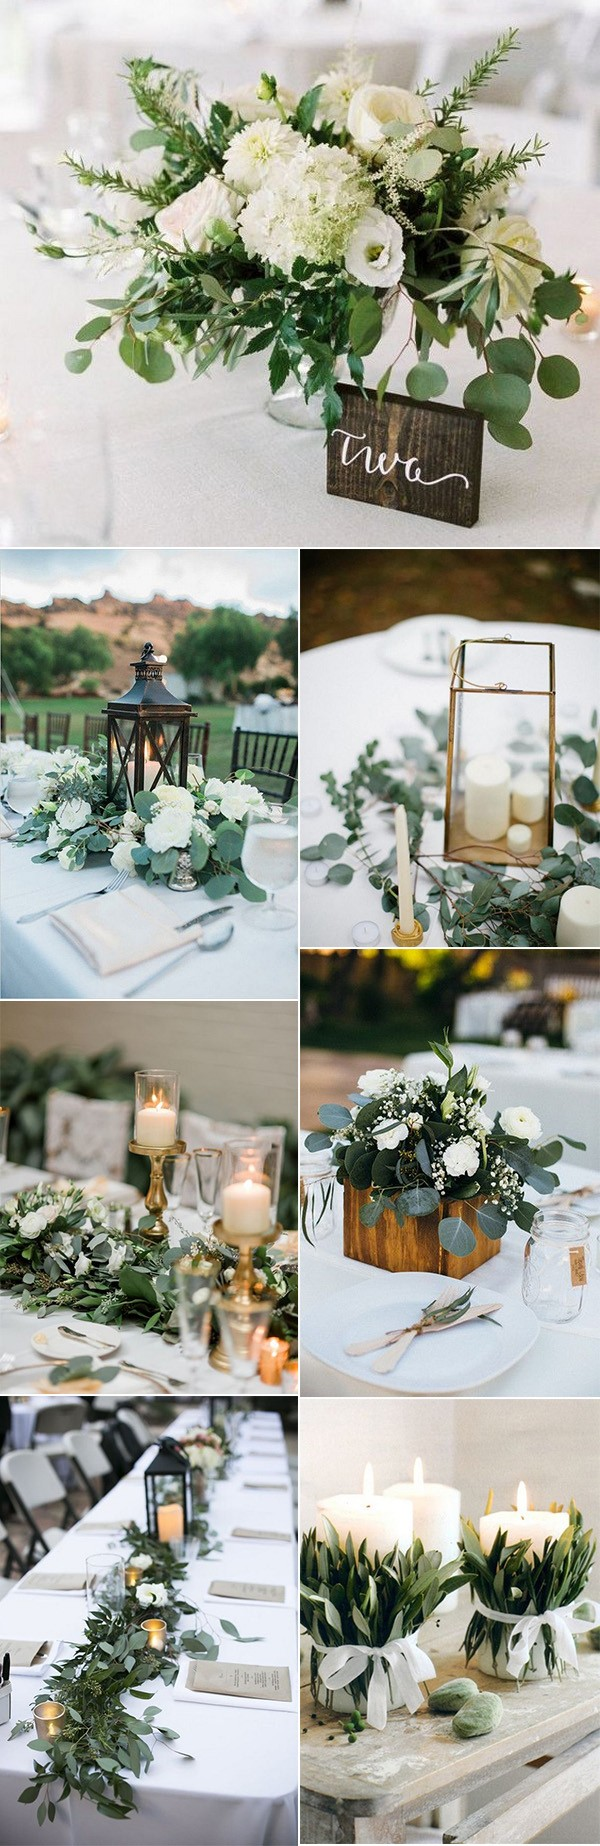 trending white and greenery chic wedding centerpieces